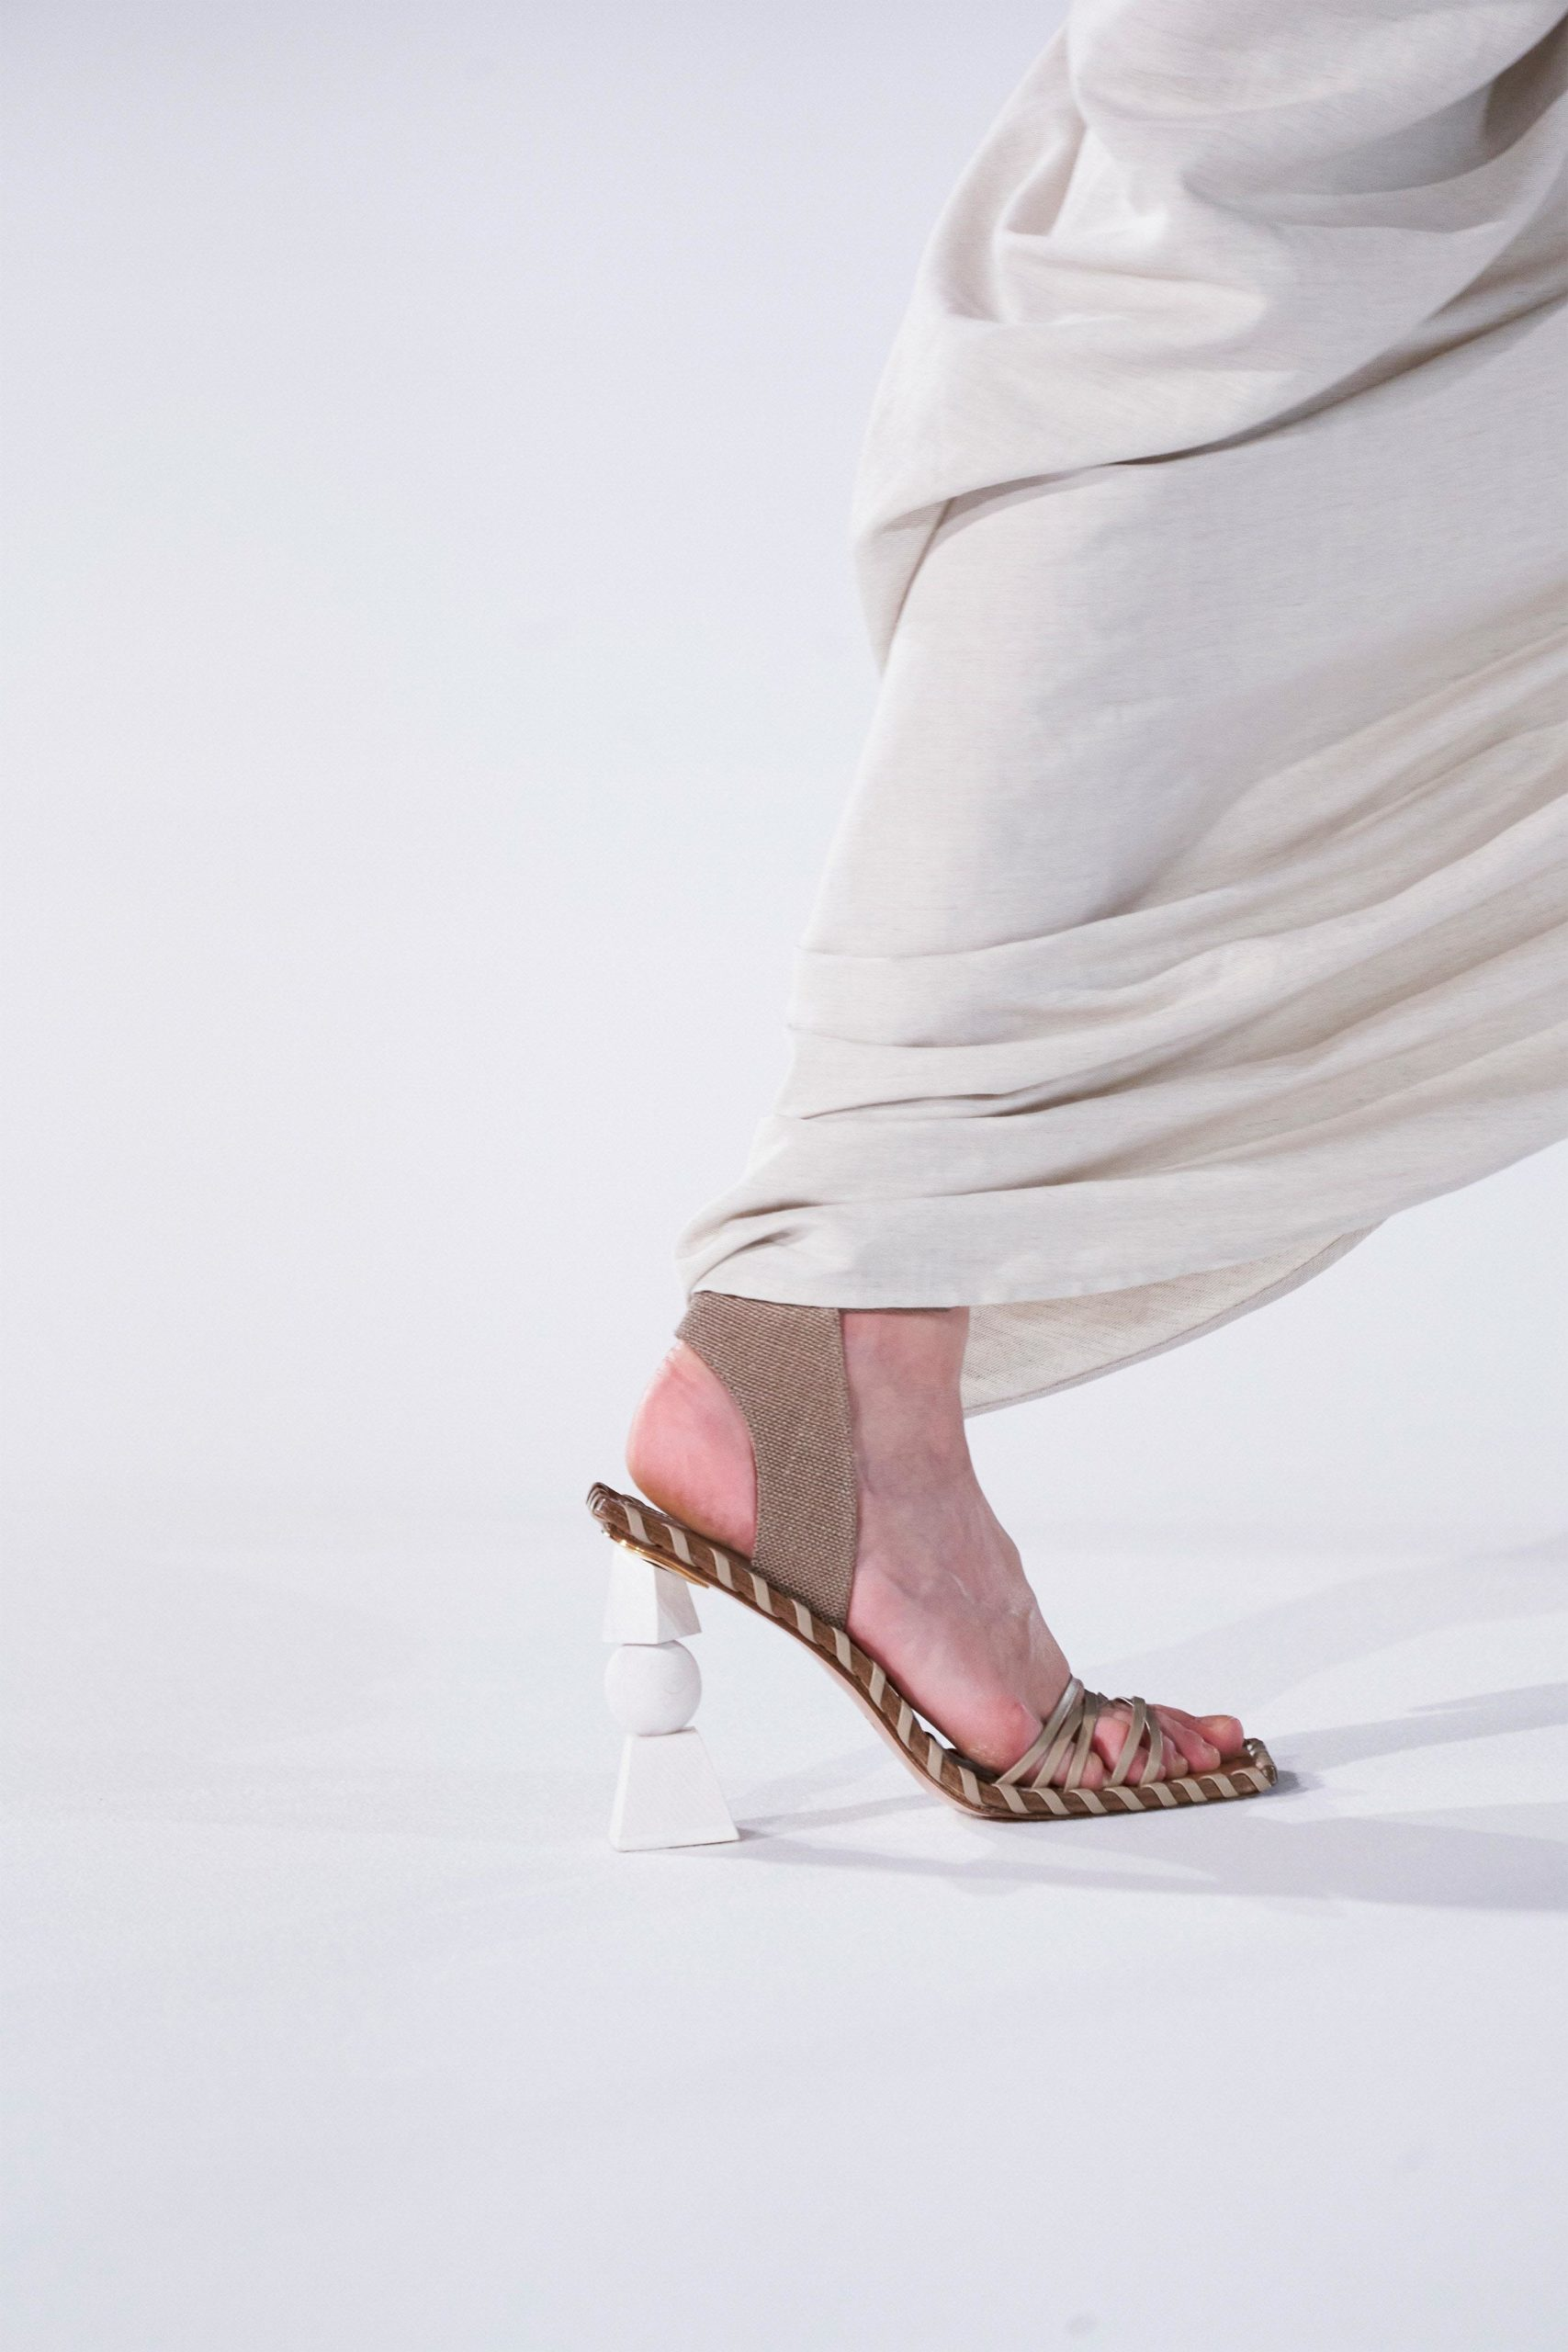 Jacquemus Fall 2020 trends runway coverage Ready To Wear Vogue shoes